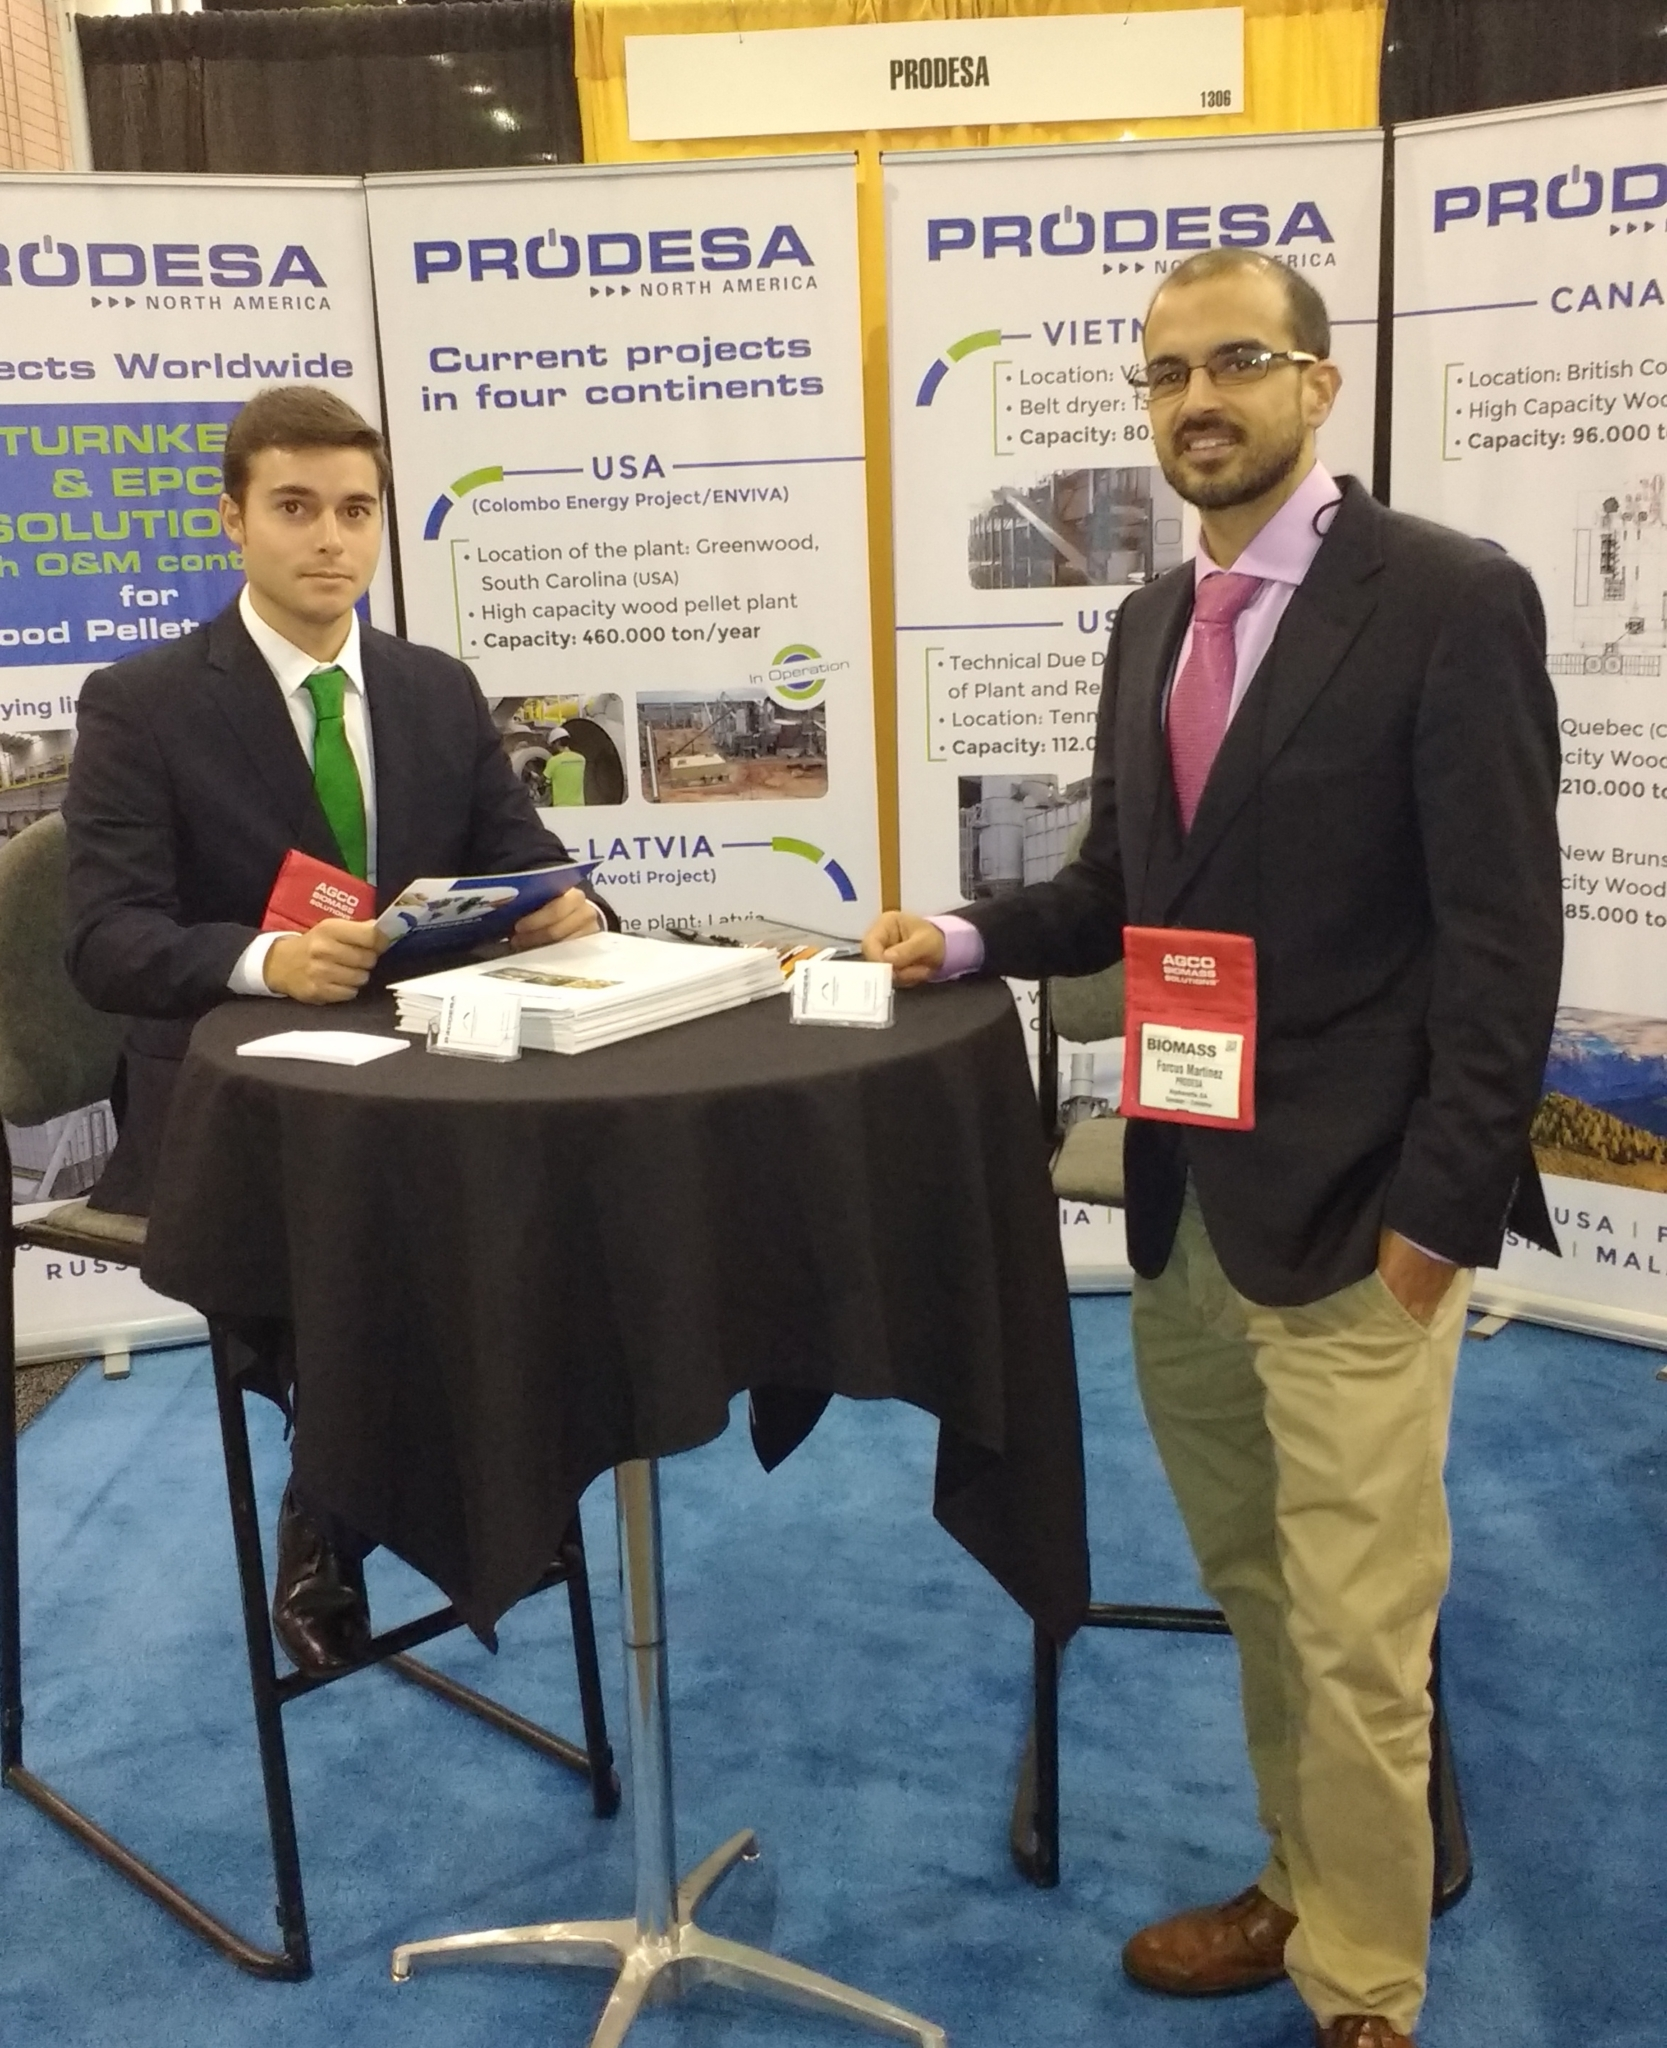 PRODESA North America: INTERNATIONAL BIOMASS CONFERENCE AND EXPO, Atlanta, 16-18 Abril